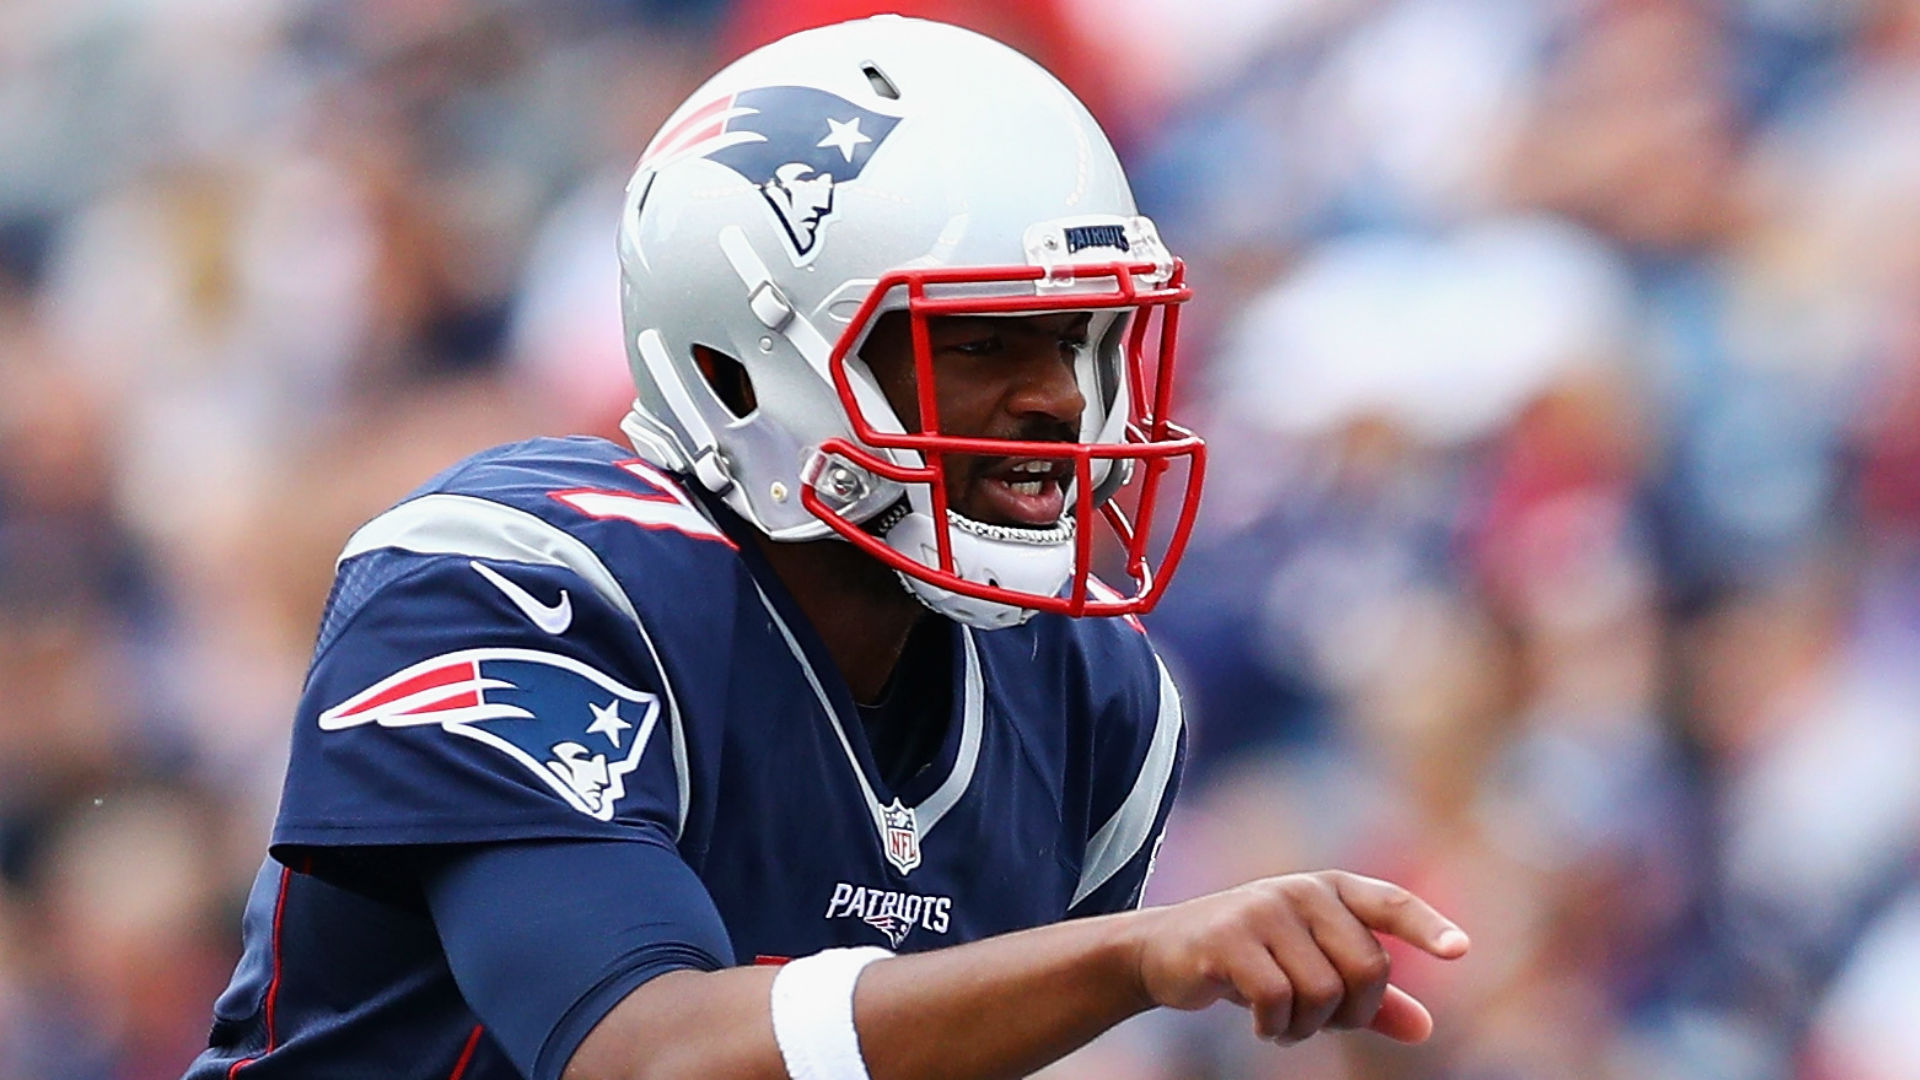 Patriots Trade Jacoby Brissett To Colts For Phillip Dorsett